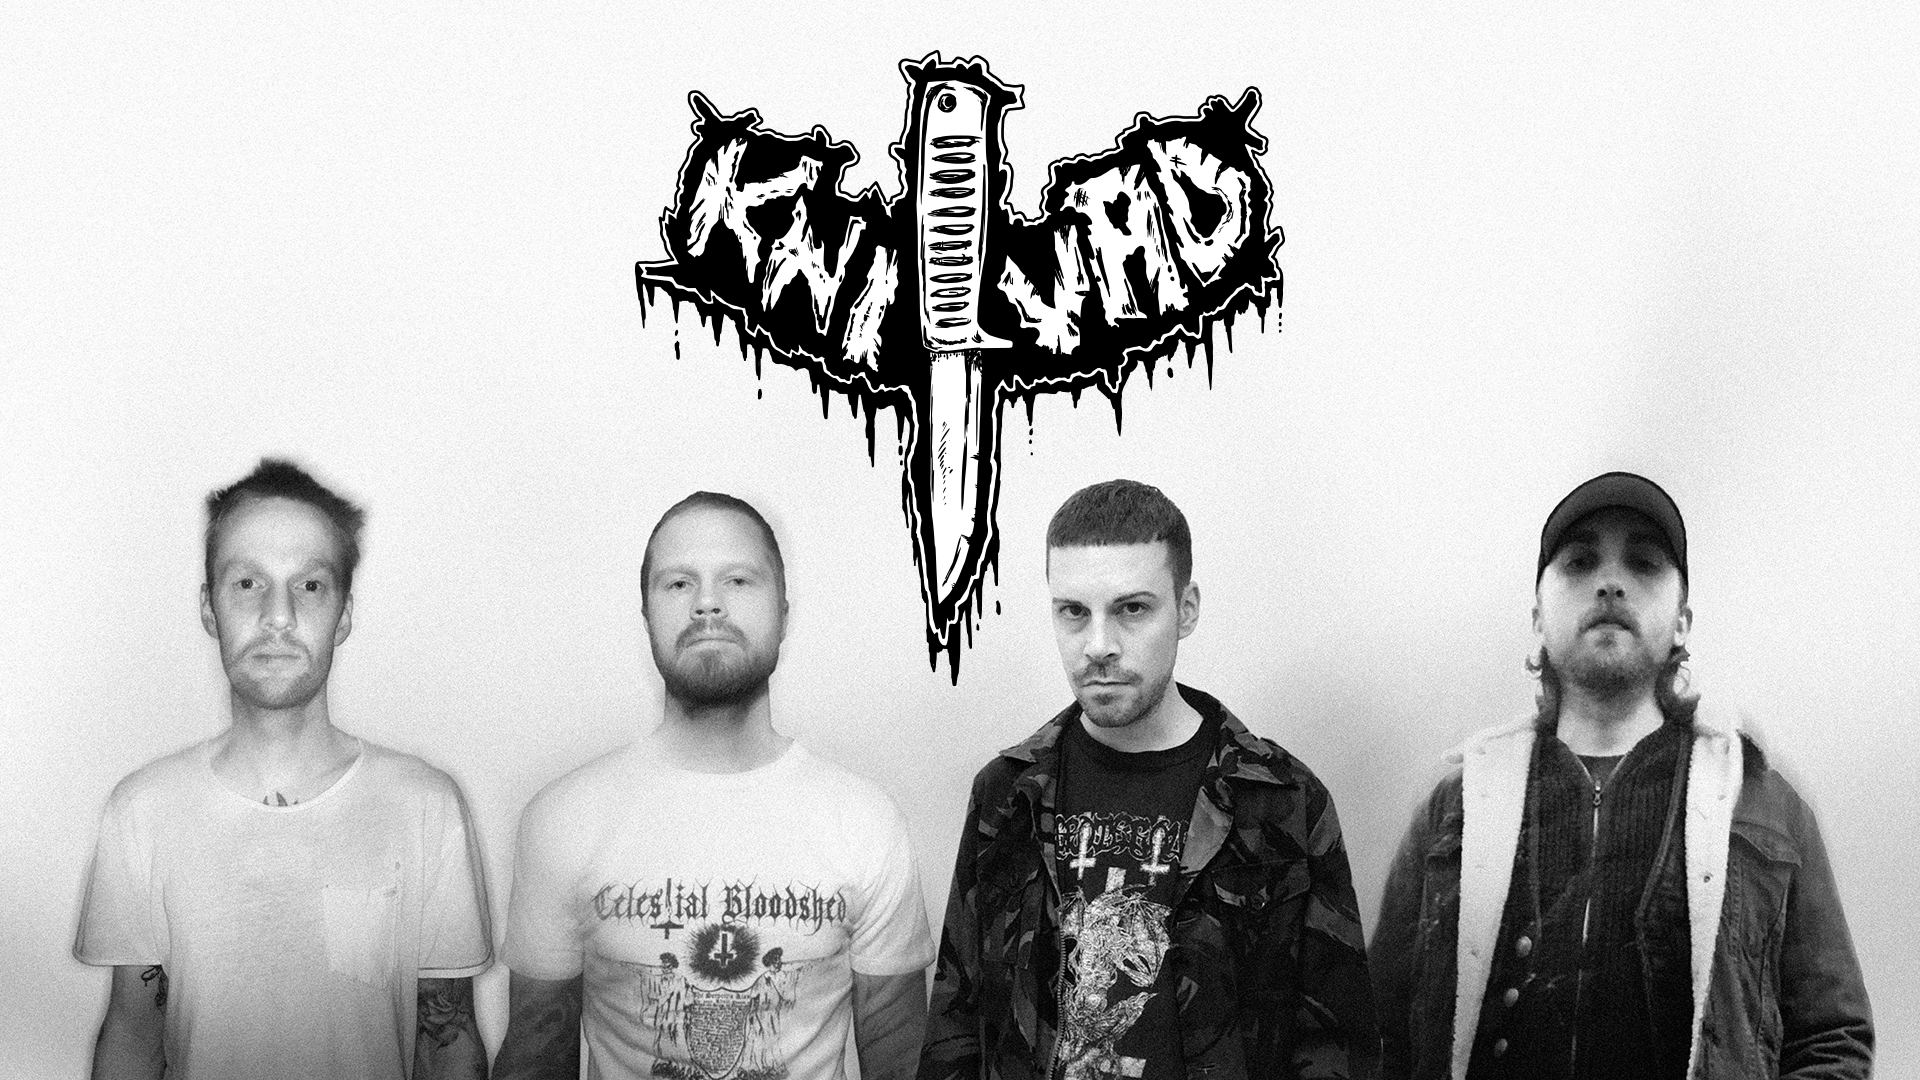 Gothenburg's KNIVAD Chronicle Pain, Punk and the Puerility of Man on Debut Album with SUICIDE RECORDS